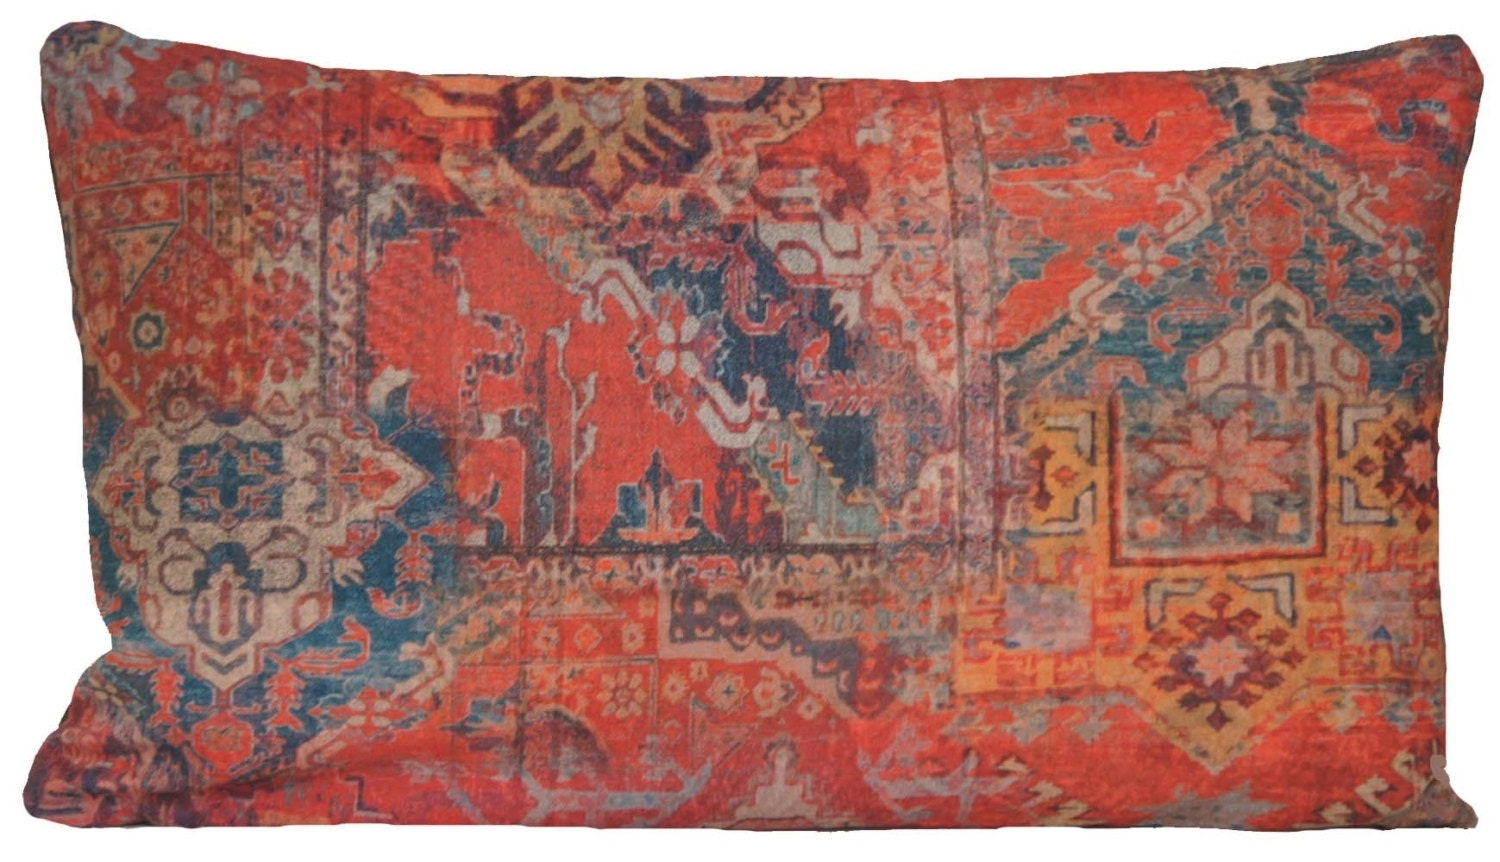 Ethnic Rug Red Throw Pillow Cover Rectangle Kilim Morrocco